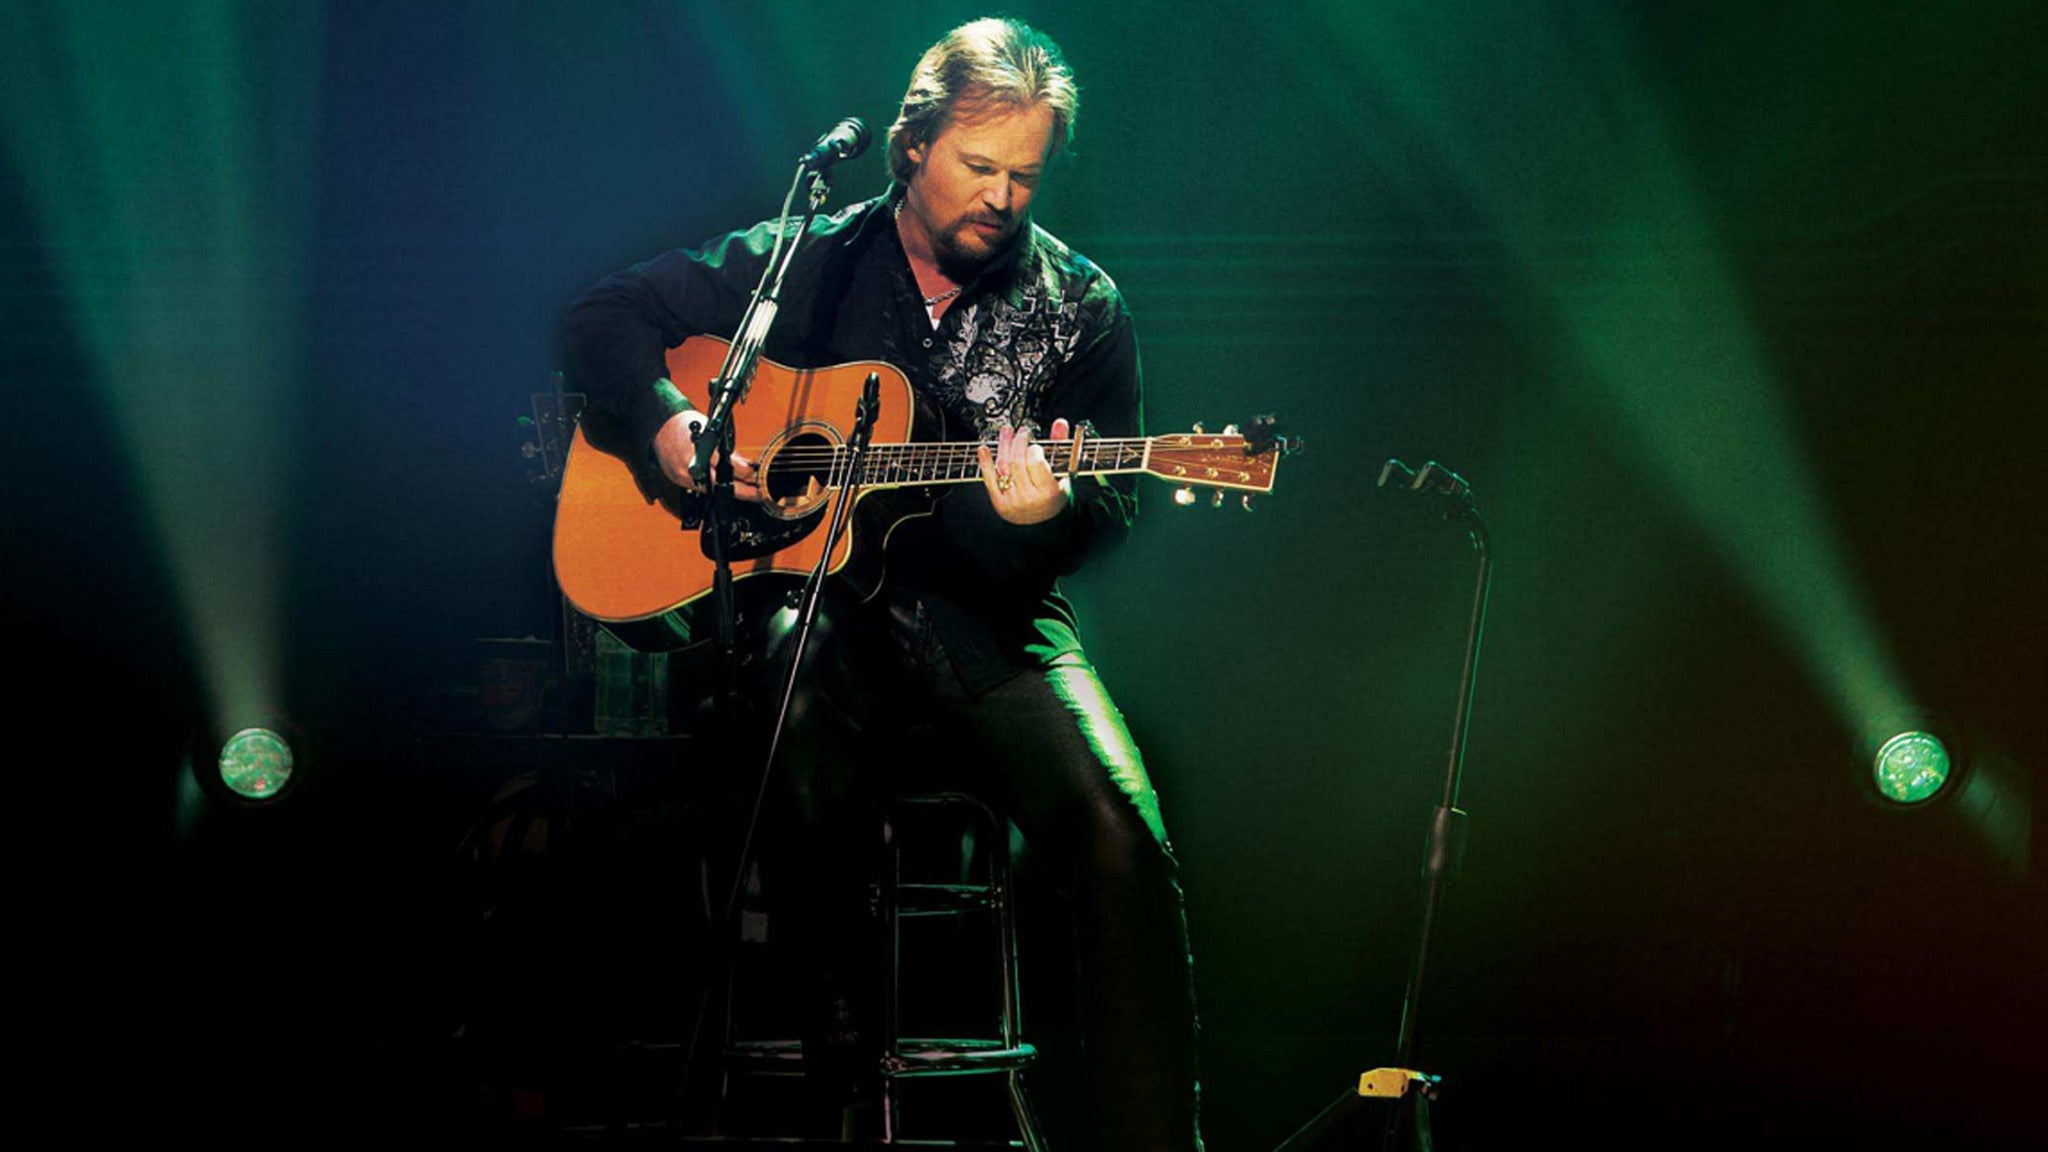 Outlaws & Renegades Tour ft. Travis Tritt & The Charlie Daniels Band